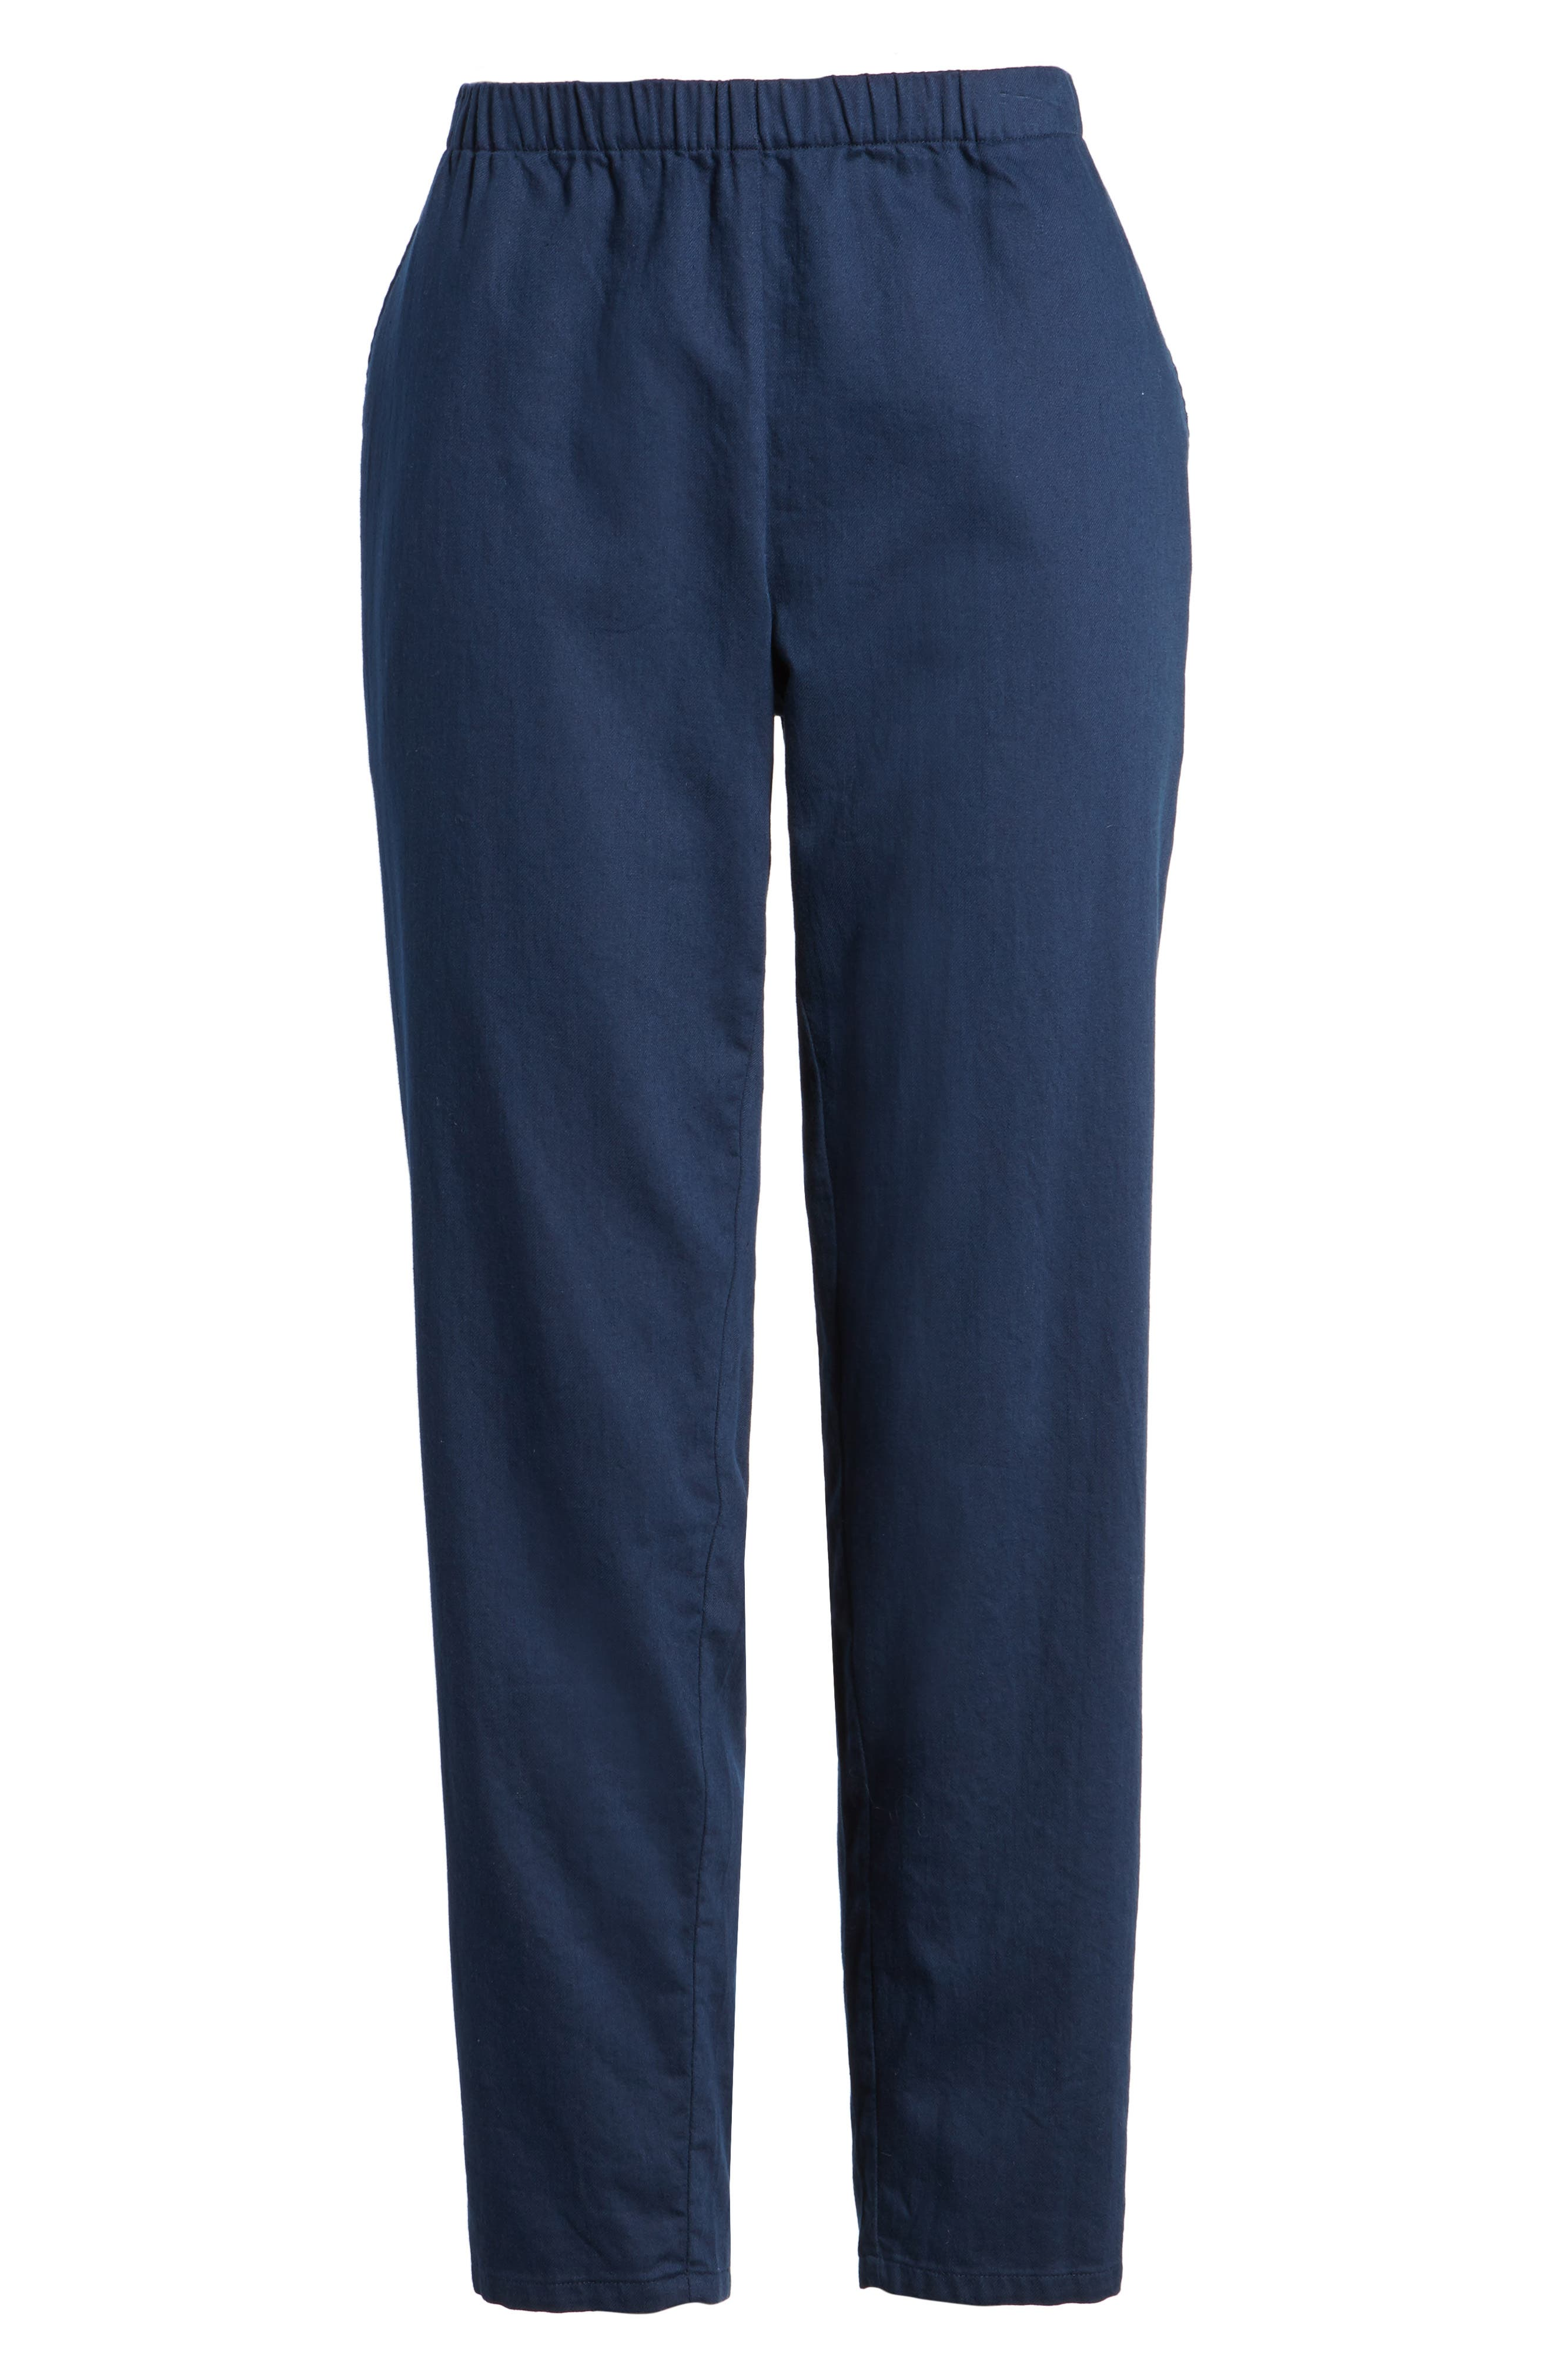 Organic Cotton Tapered Ankle Pants,                             Alternate thumbnail 25, color,